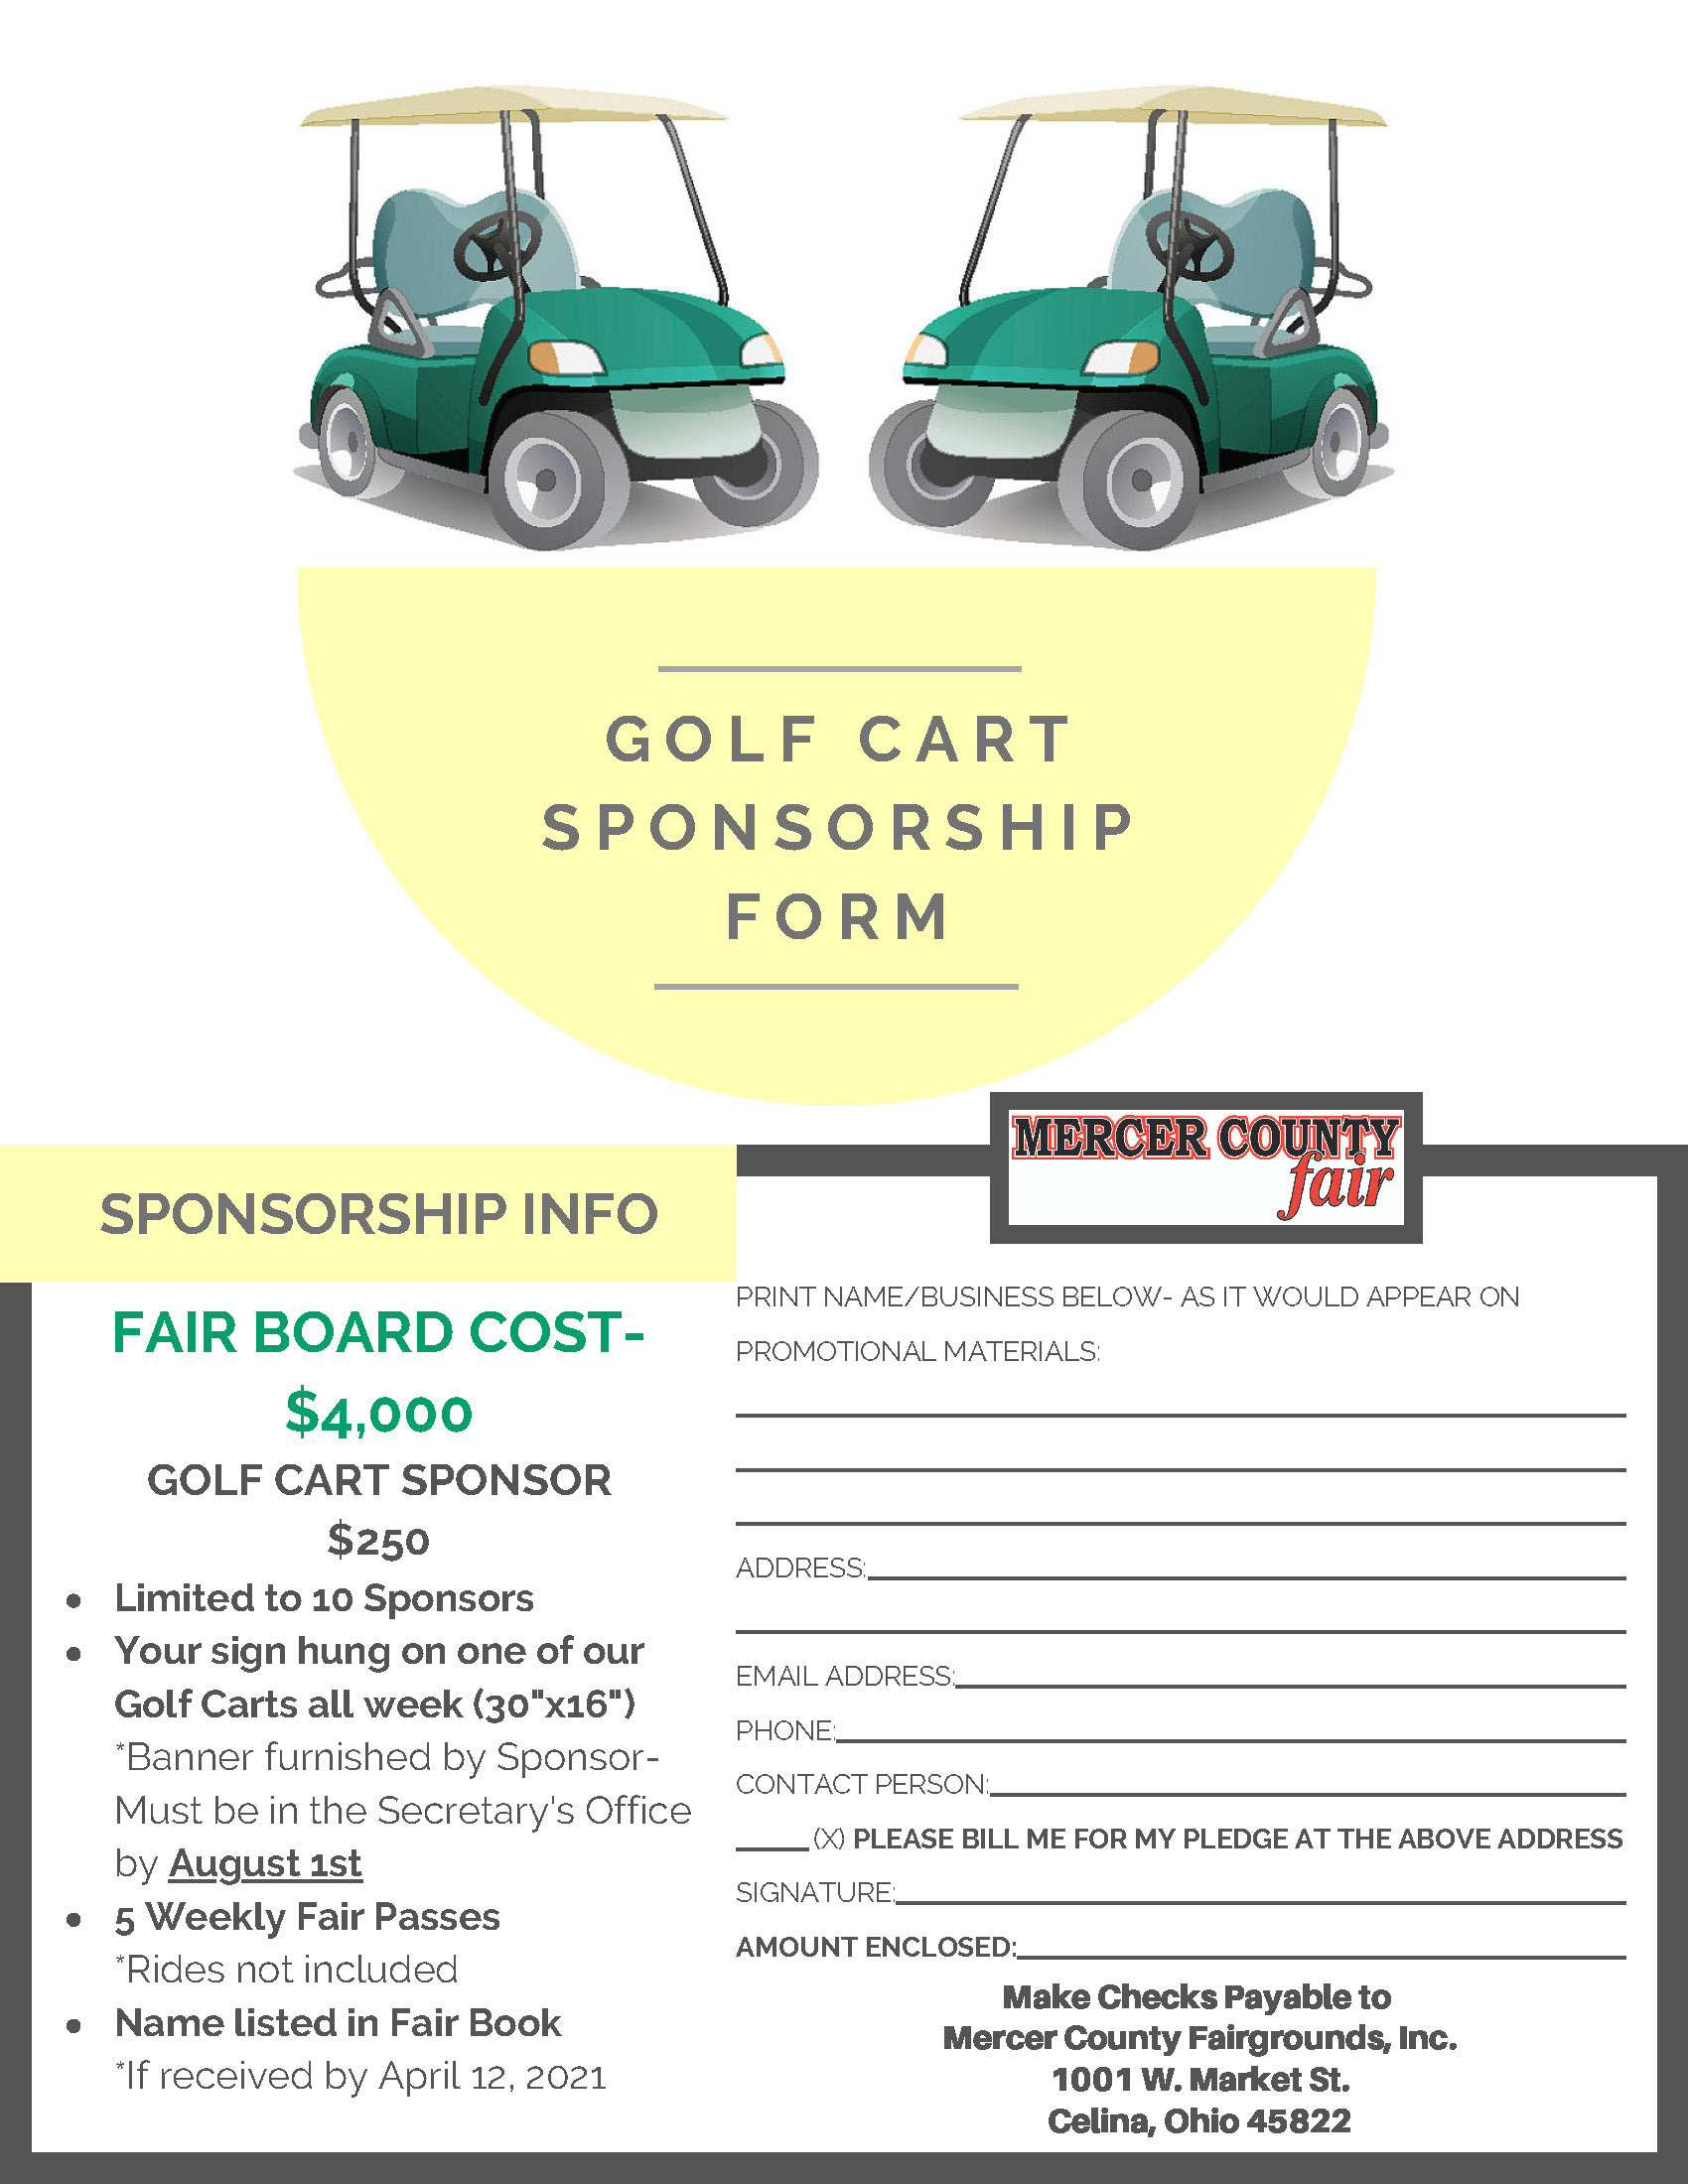 Golf Cart Sponsorship Form